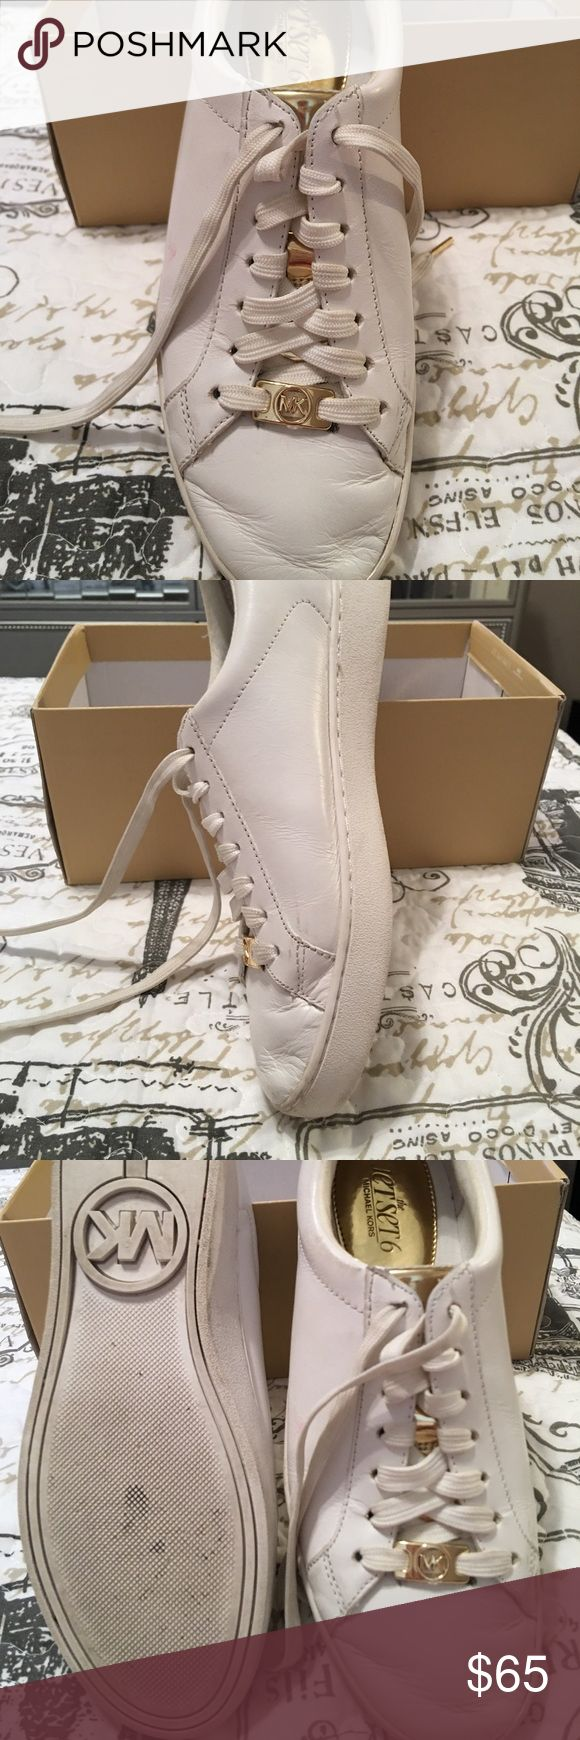 White w/gold Hard ware tennis shoes Great for summer white with gold hard ware tennis shoes shorts dresses bathing suits get ready summer!!! KORS Michael Kors Shoes Athletic Shoes